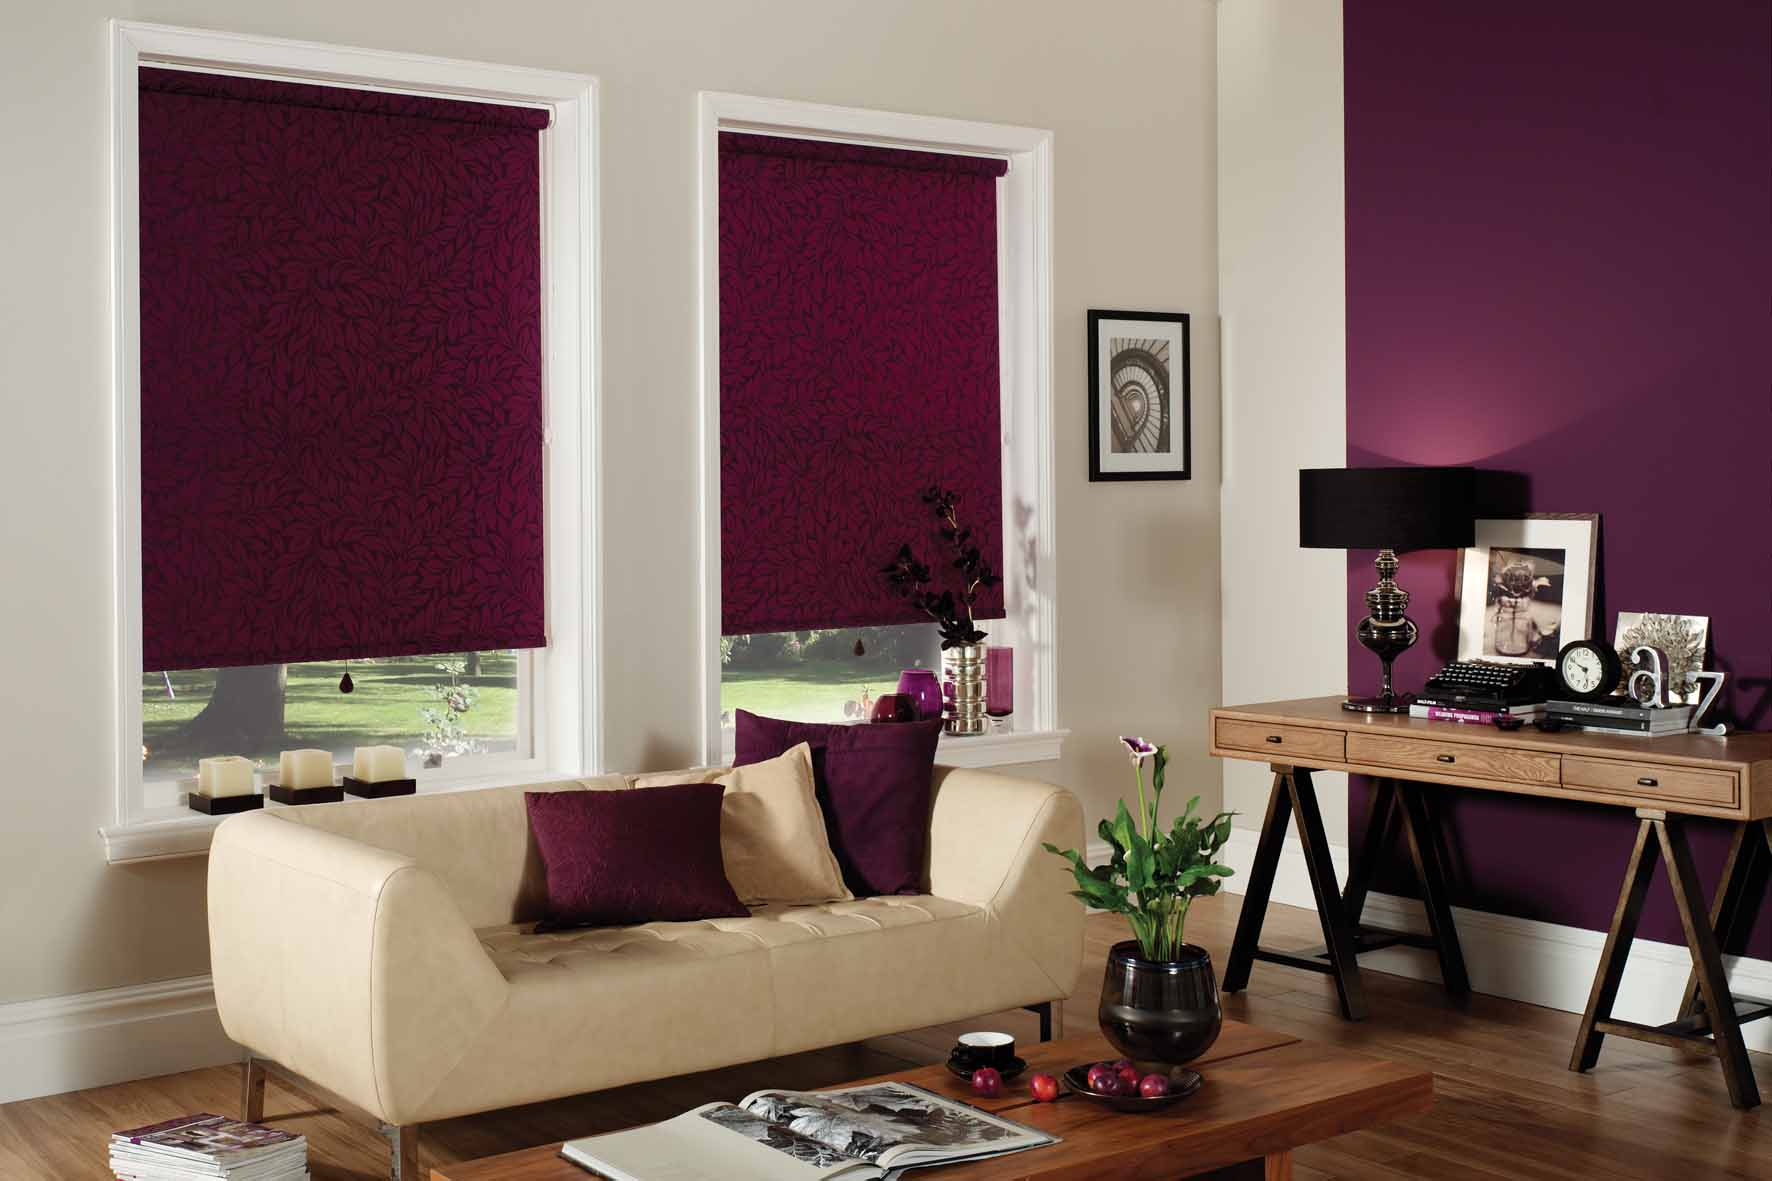 Knight Shades | Blinds West lothian | Made to Measure blinds